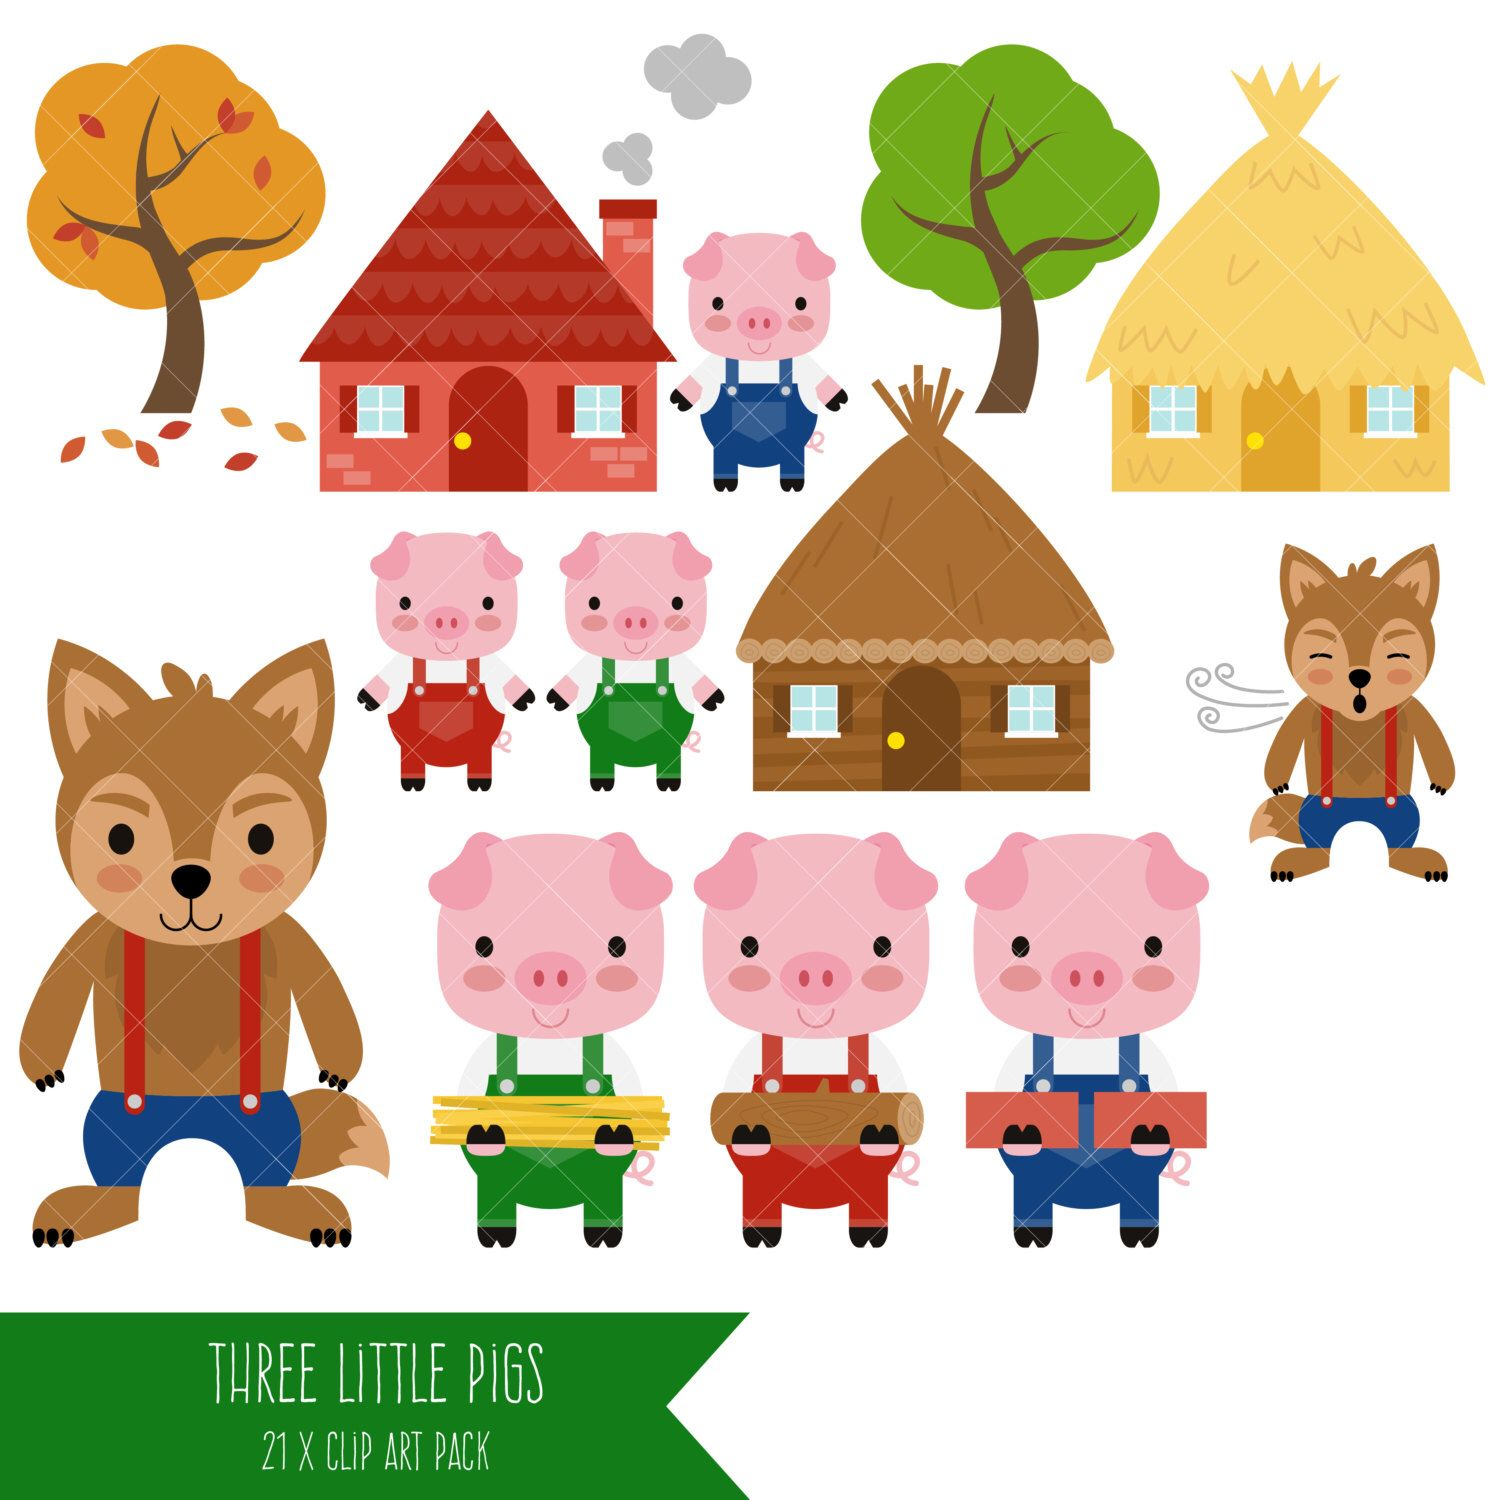 medium resolution of three little pigs clipart big bad wolf clip art by clipartisan on etsy https